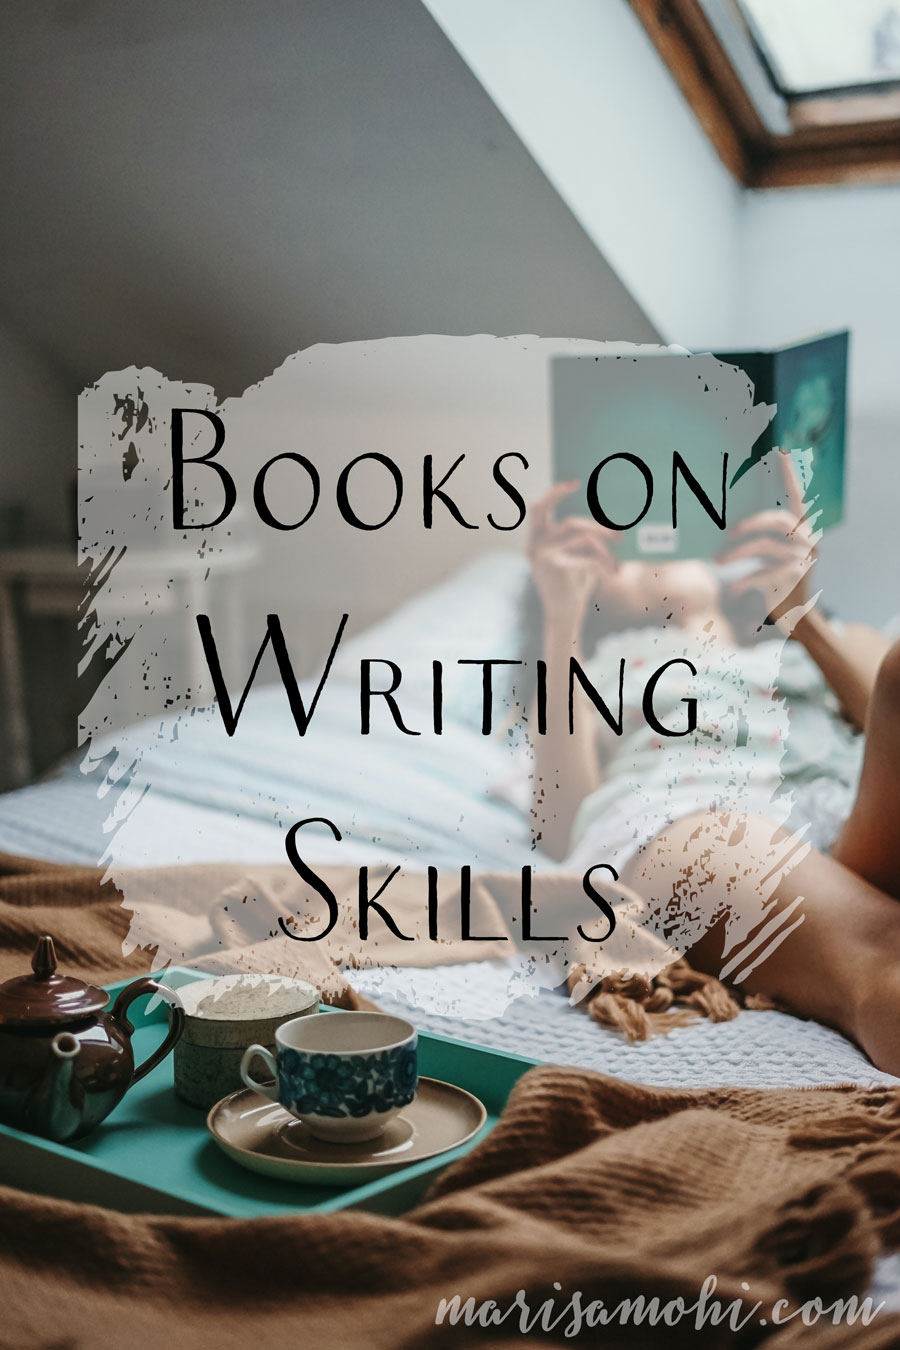 Books on Writing Skills | These books on writing skills are great for writers who are looking to get faster, writer better, and build their online author platform.